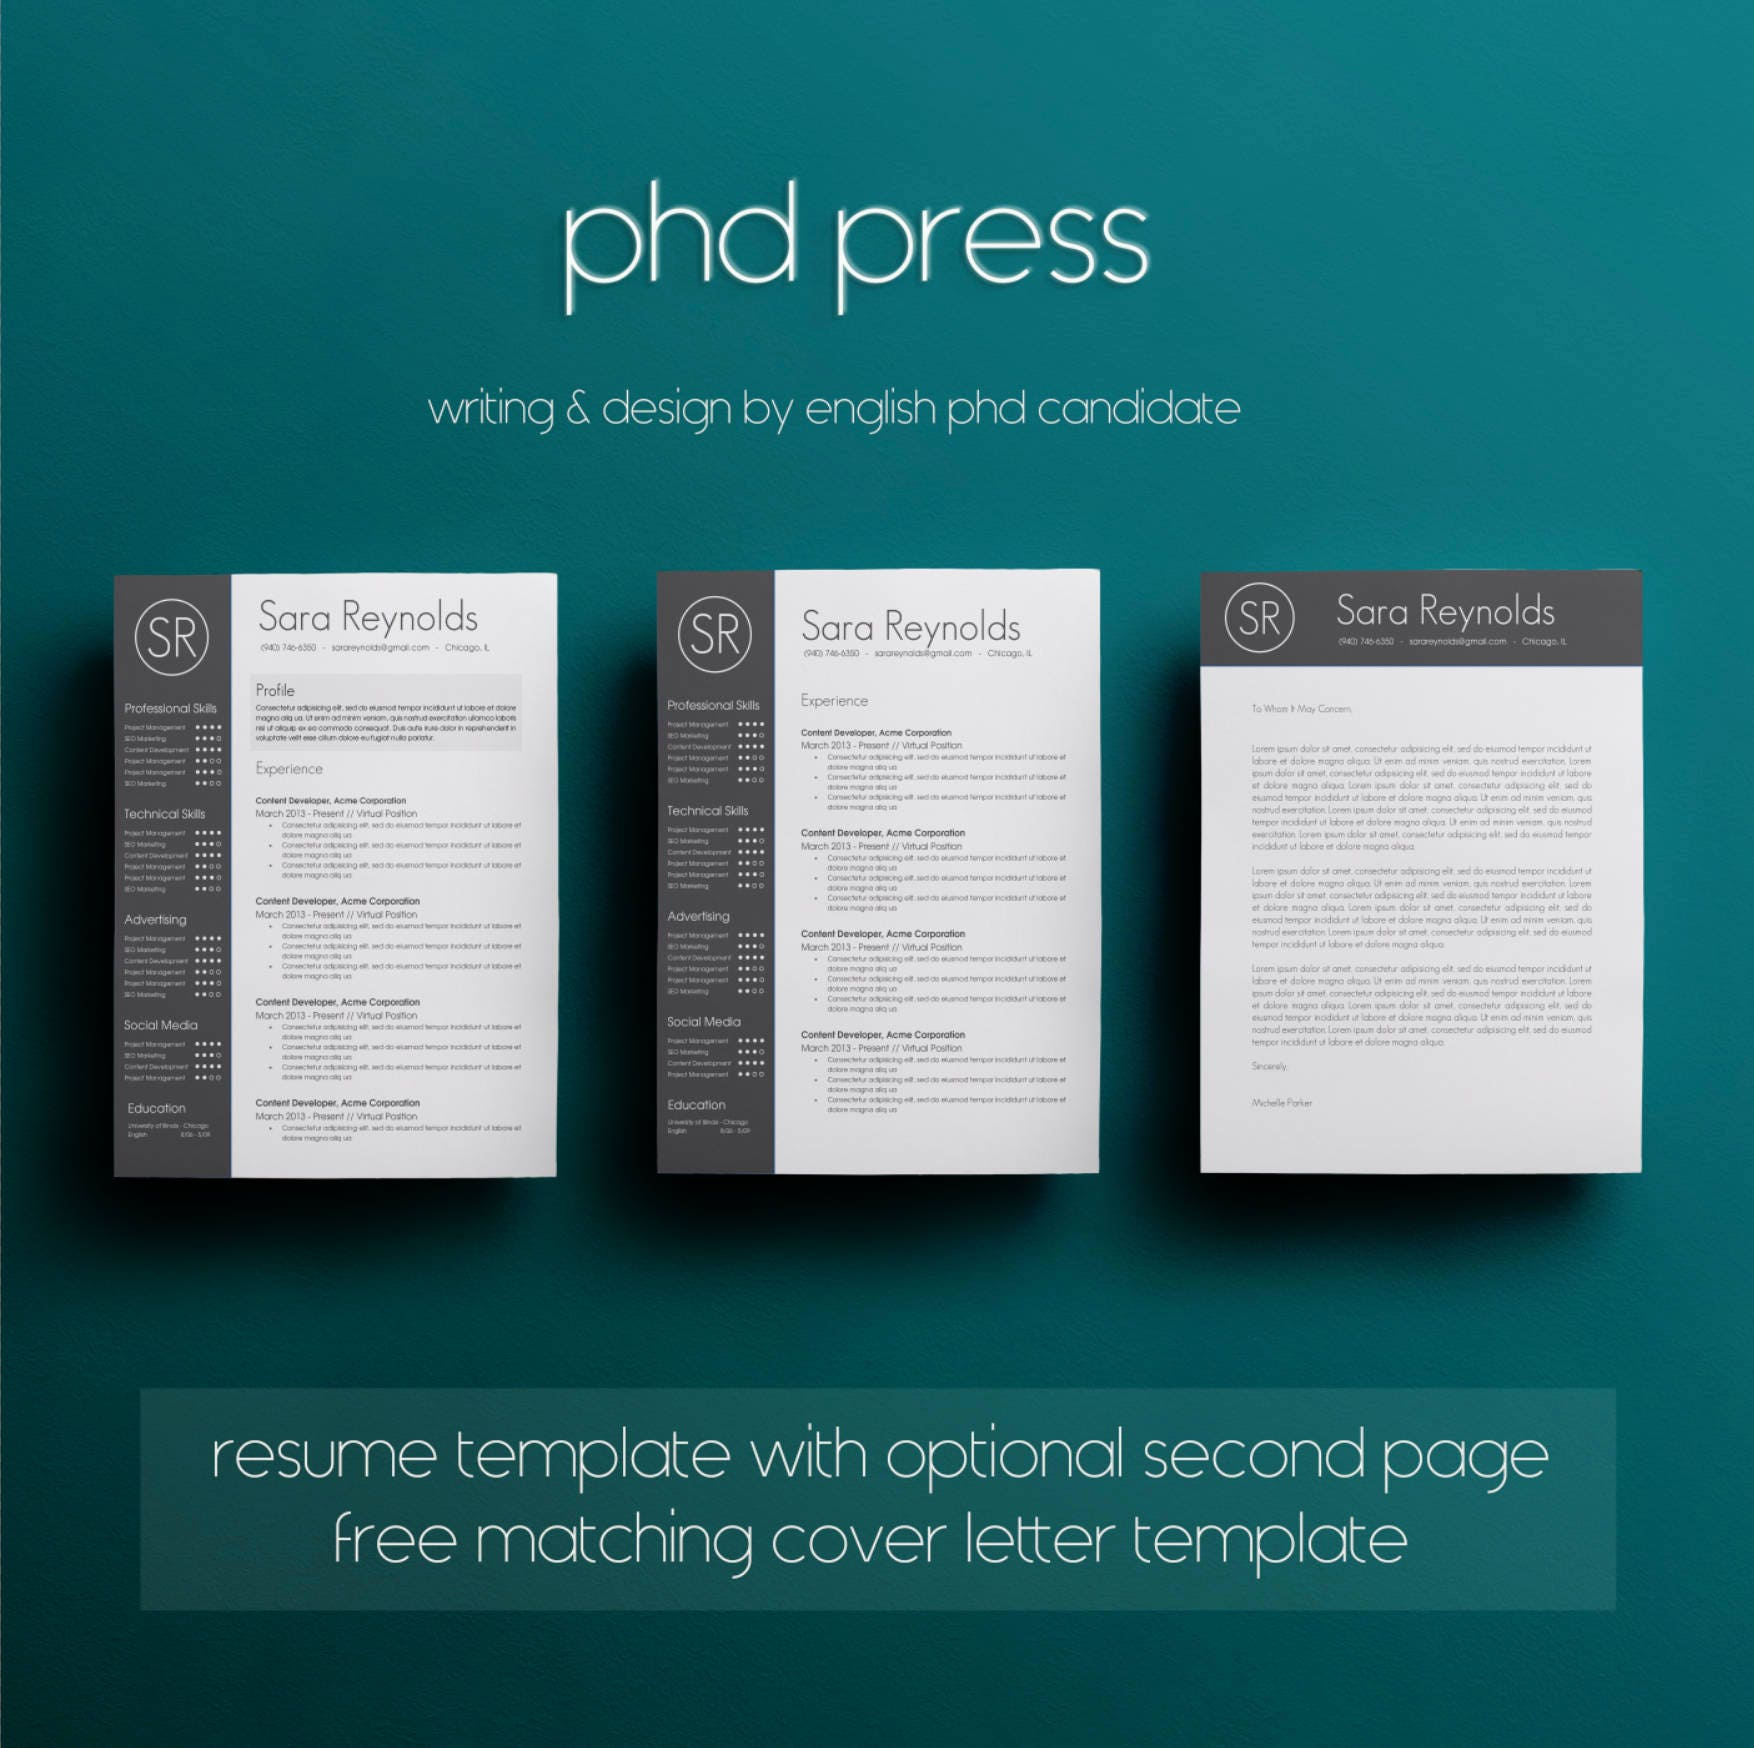 Resume Template Cover Letter Template The Sara By Phdpress: Resume Template & Cover Letter Template CV Template